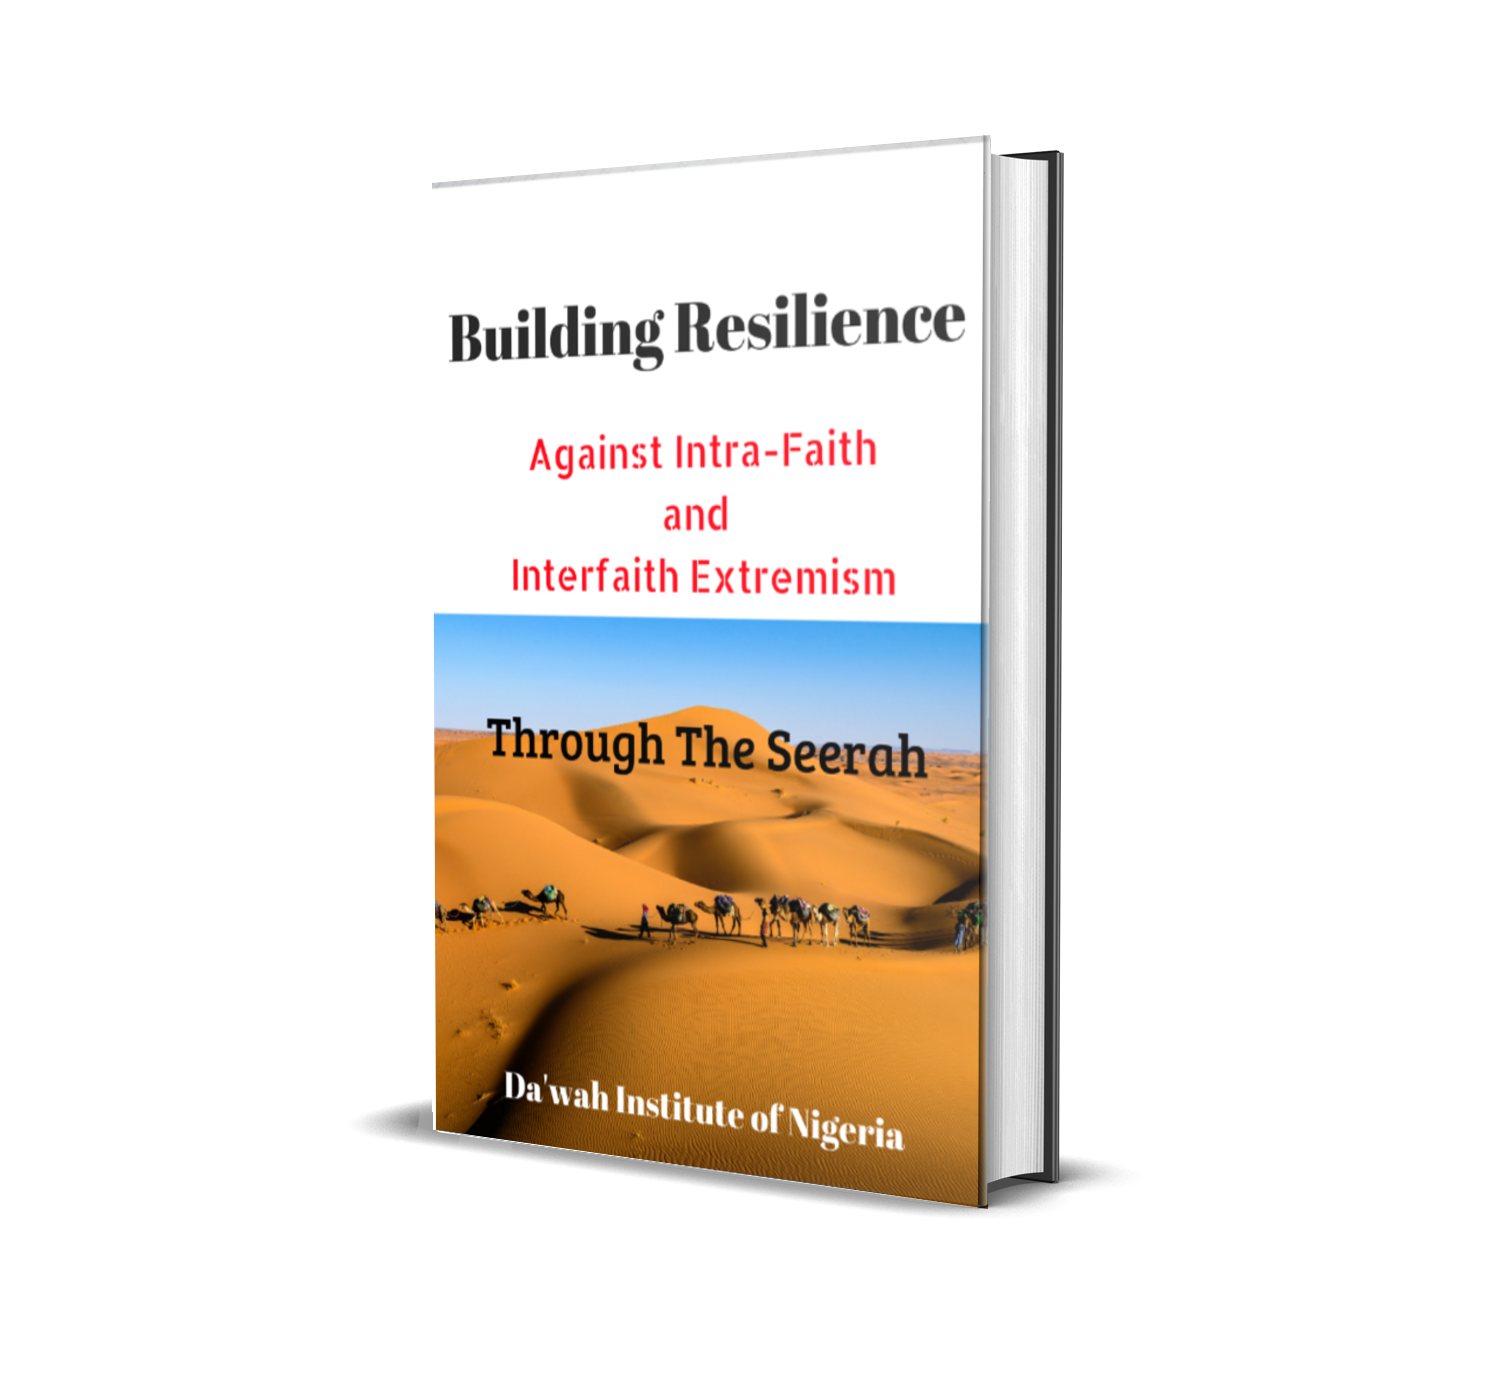 https://dawahinstitute.org/wp-content/uploads/Building-Resilience.png